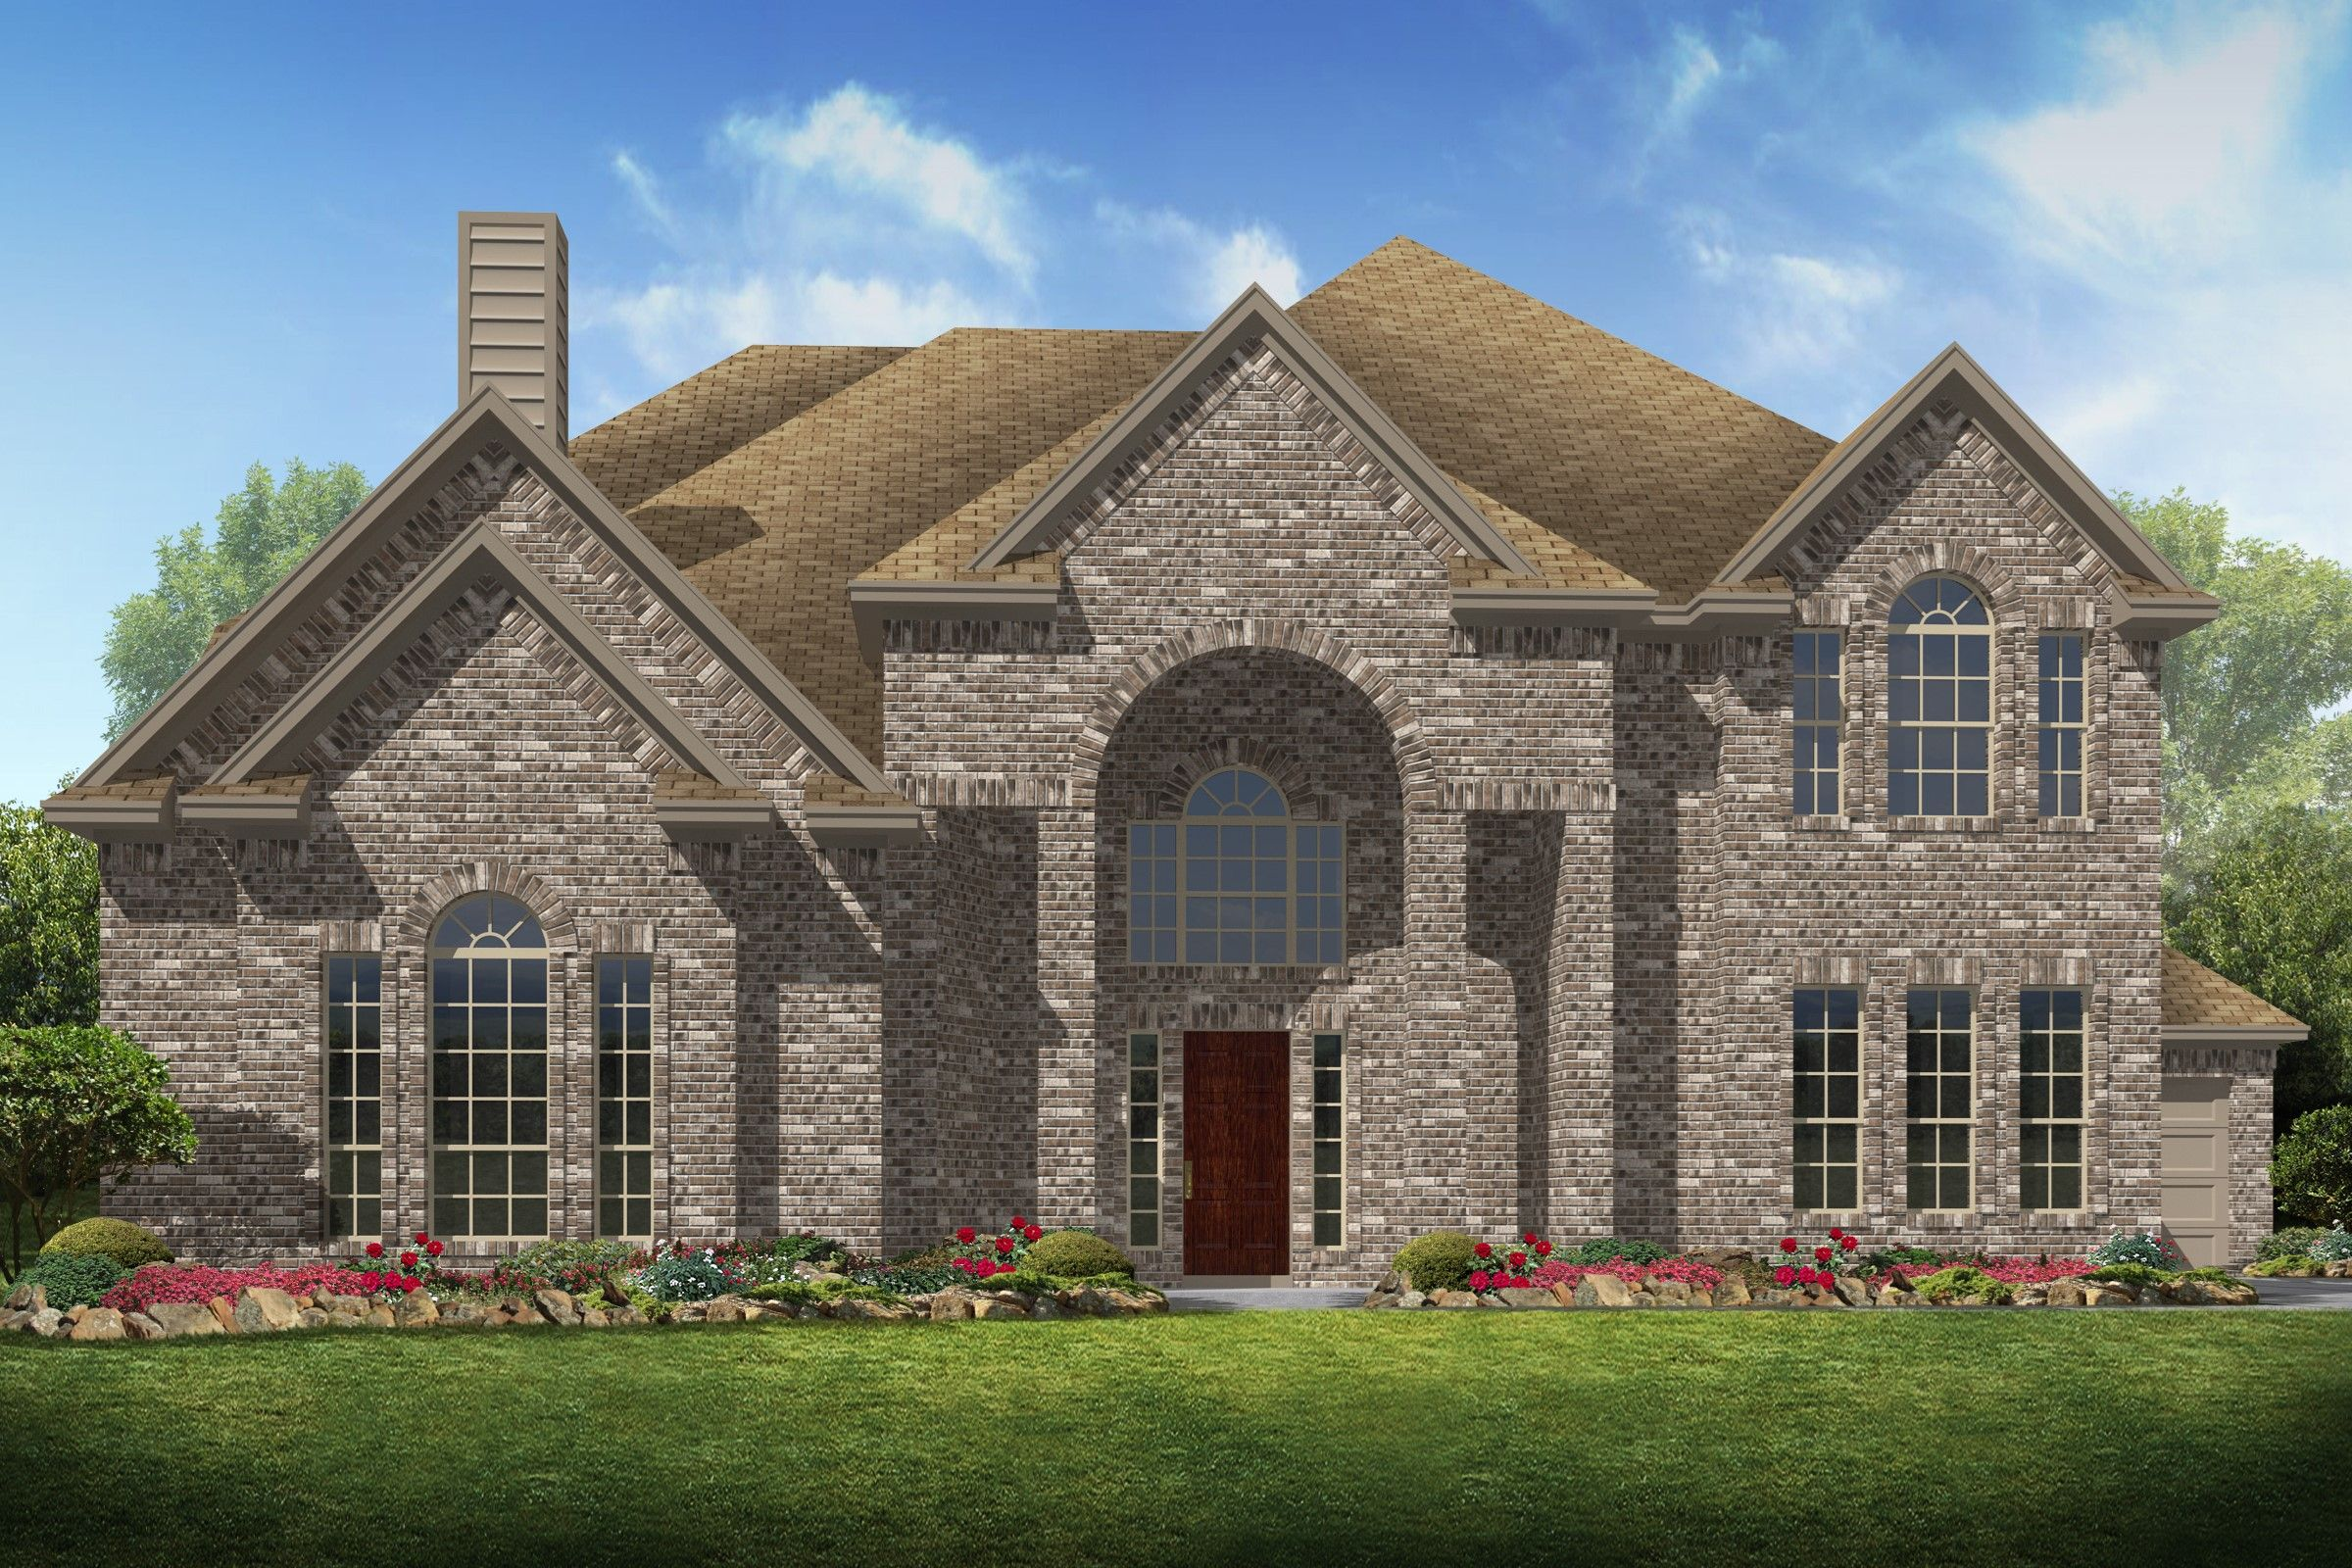 Single Family for Sale at Briarwood 4603 Red Fox Circle, Homesite 19 Baytown, Texas 77523 United States